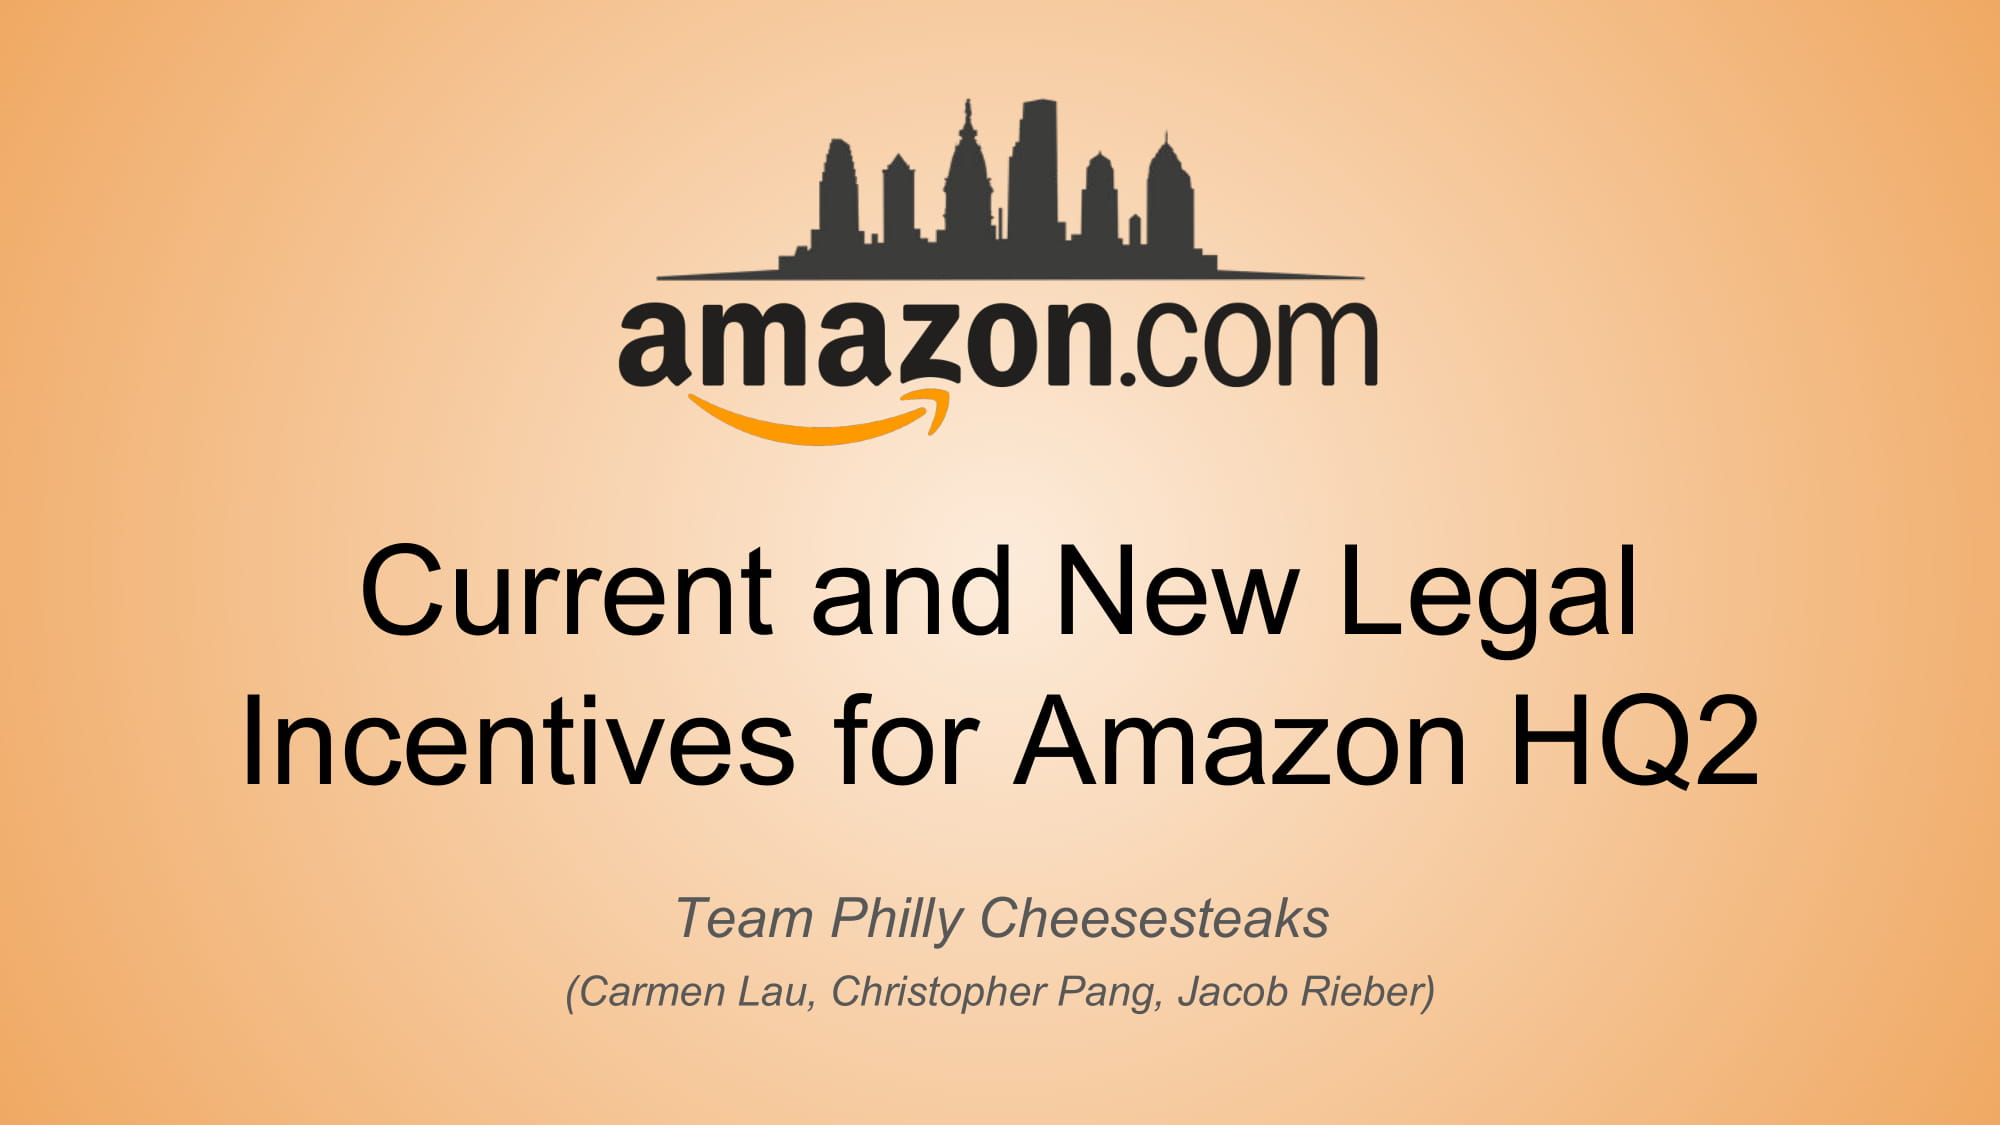 (Final Deck) Current and New Legal Incentives for Amazon HQ2 - Team Philly Cheesesteaks-1.jpg